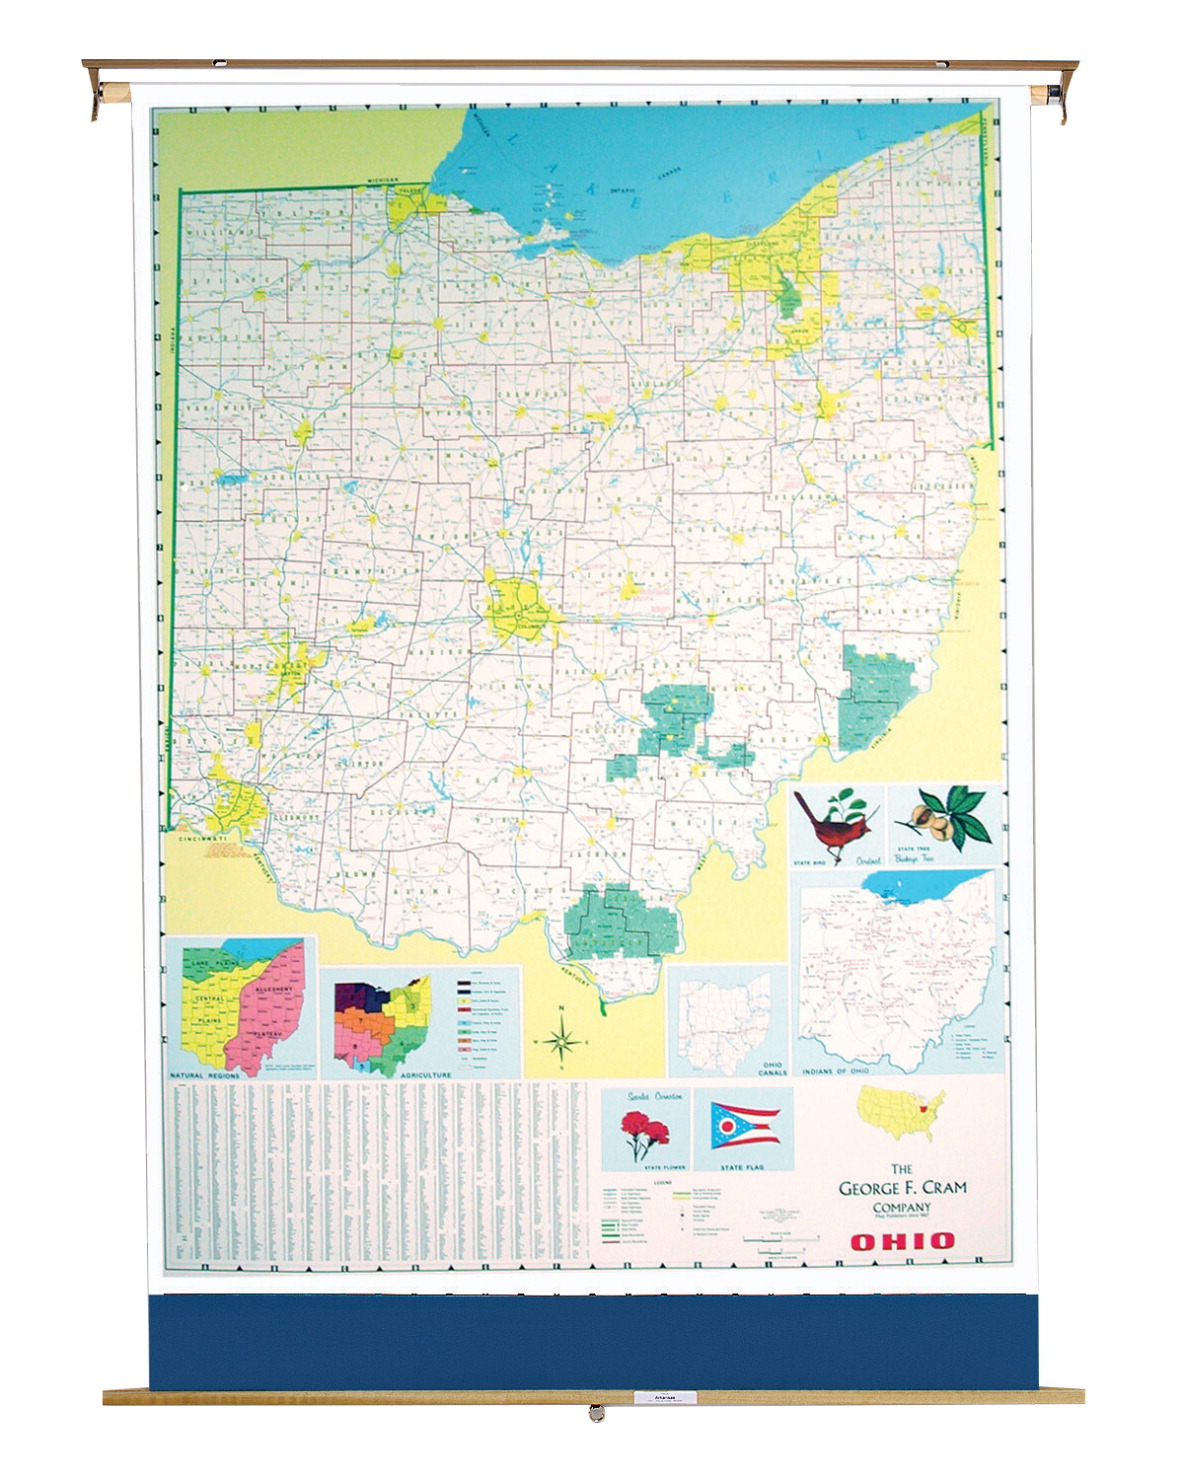 Details about Nystrom Ohio Pull Down Roller Classroom Map, 51 x 68 Inches